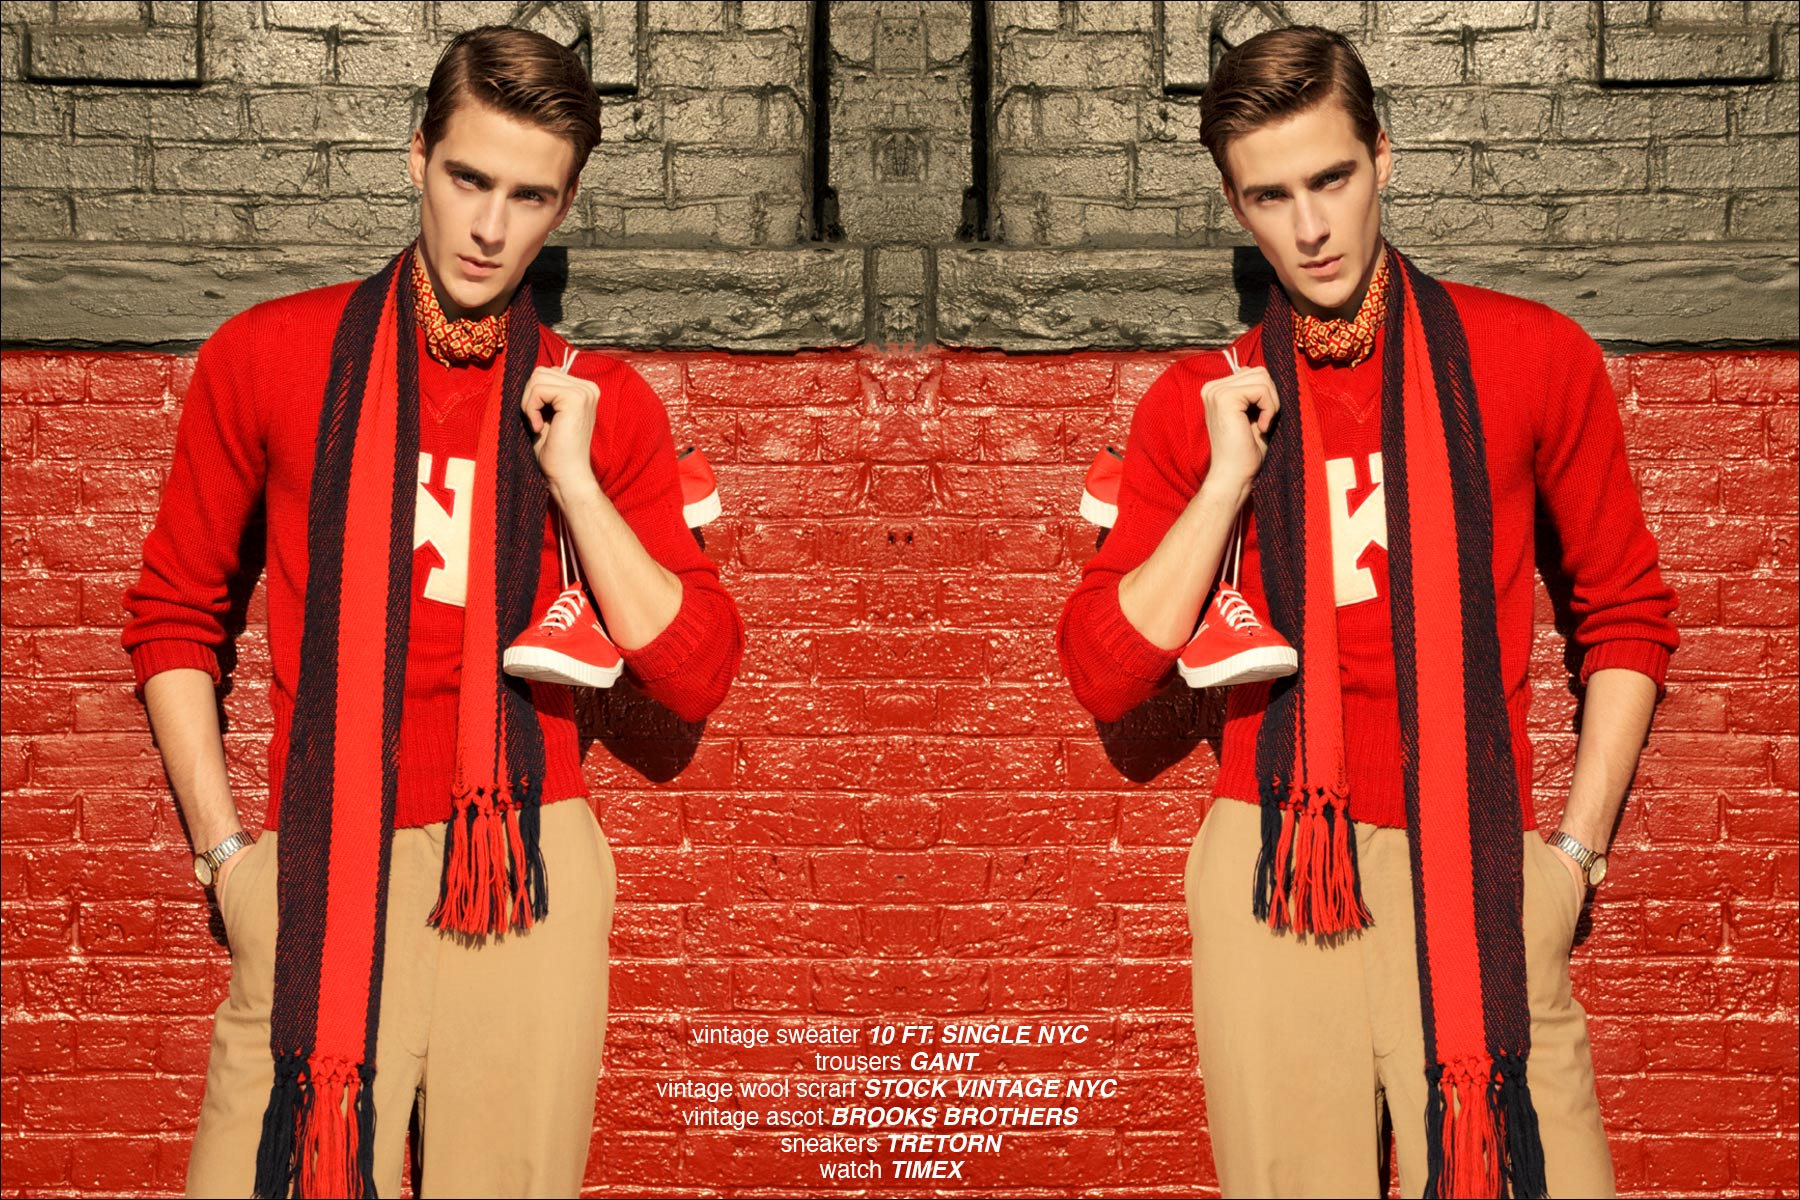 Samuel Roberts in a vintage letterman's sweater, modeling for Ponyboy Magazine in New York City, photographed by Alexander Thompson.